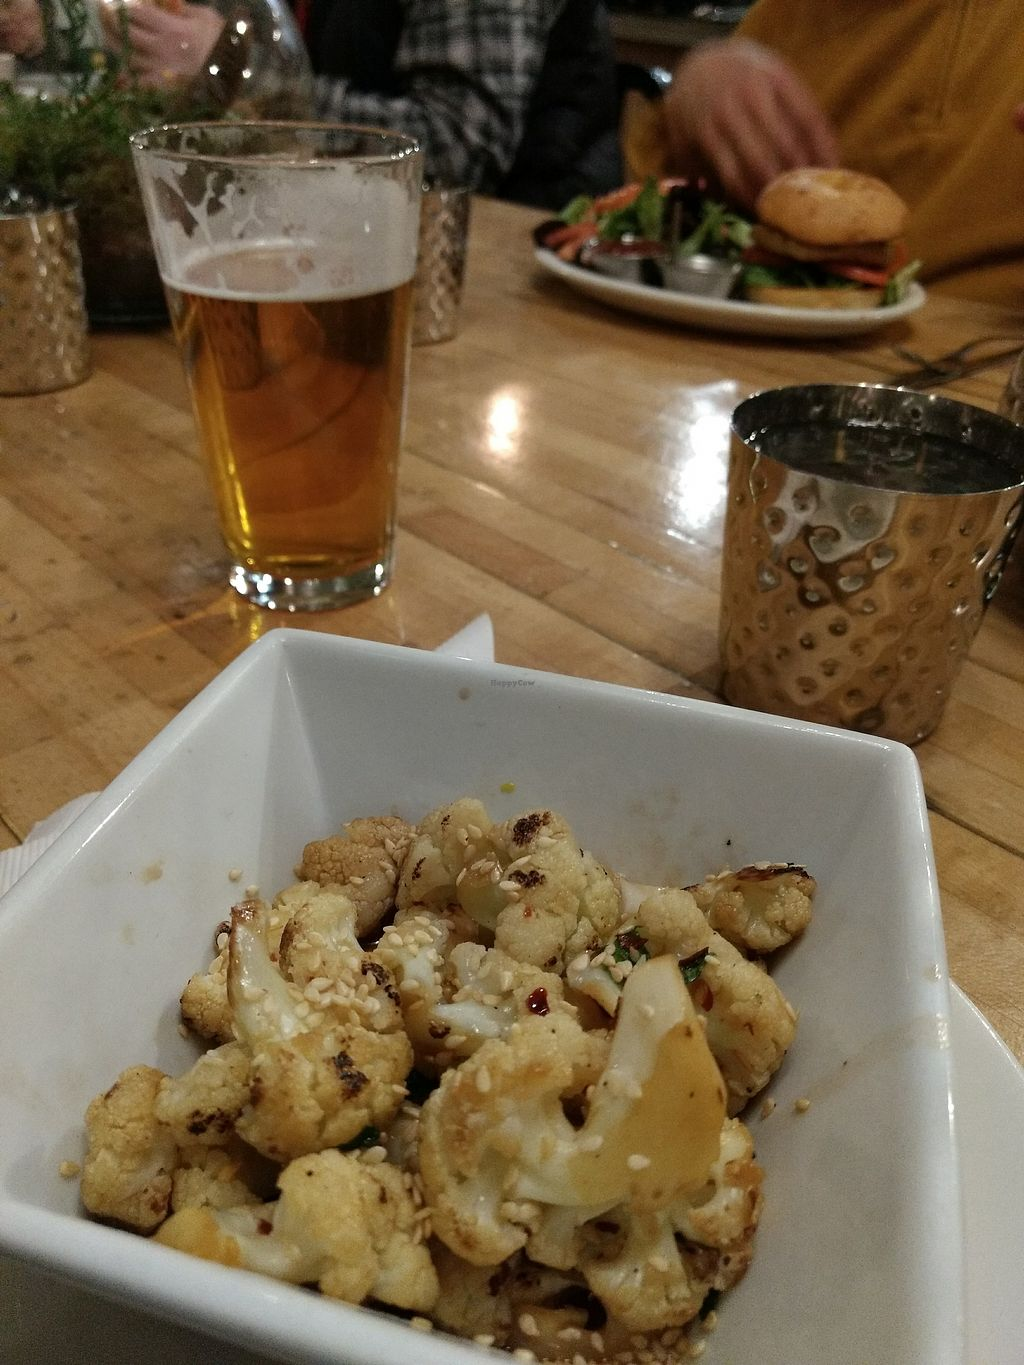 "Photo of Iconik Coffee Roasters  by <a href=""/members/profile/bduboff"">bduboff</a> <br/>Roasted Cauliflower  <br/> December 8, 2017  - <a href='/contact/abuse/image/106747/333485'>Report</a>"